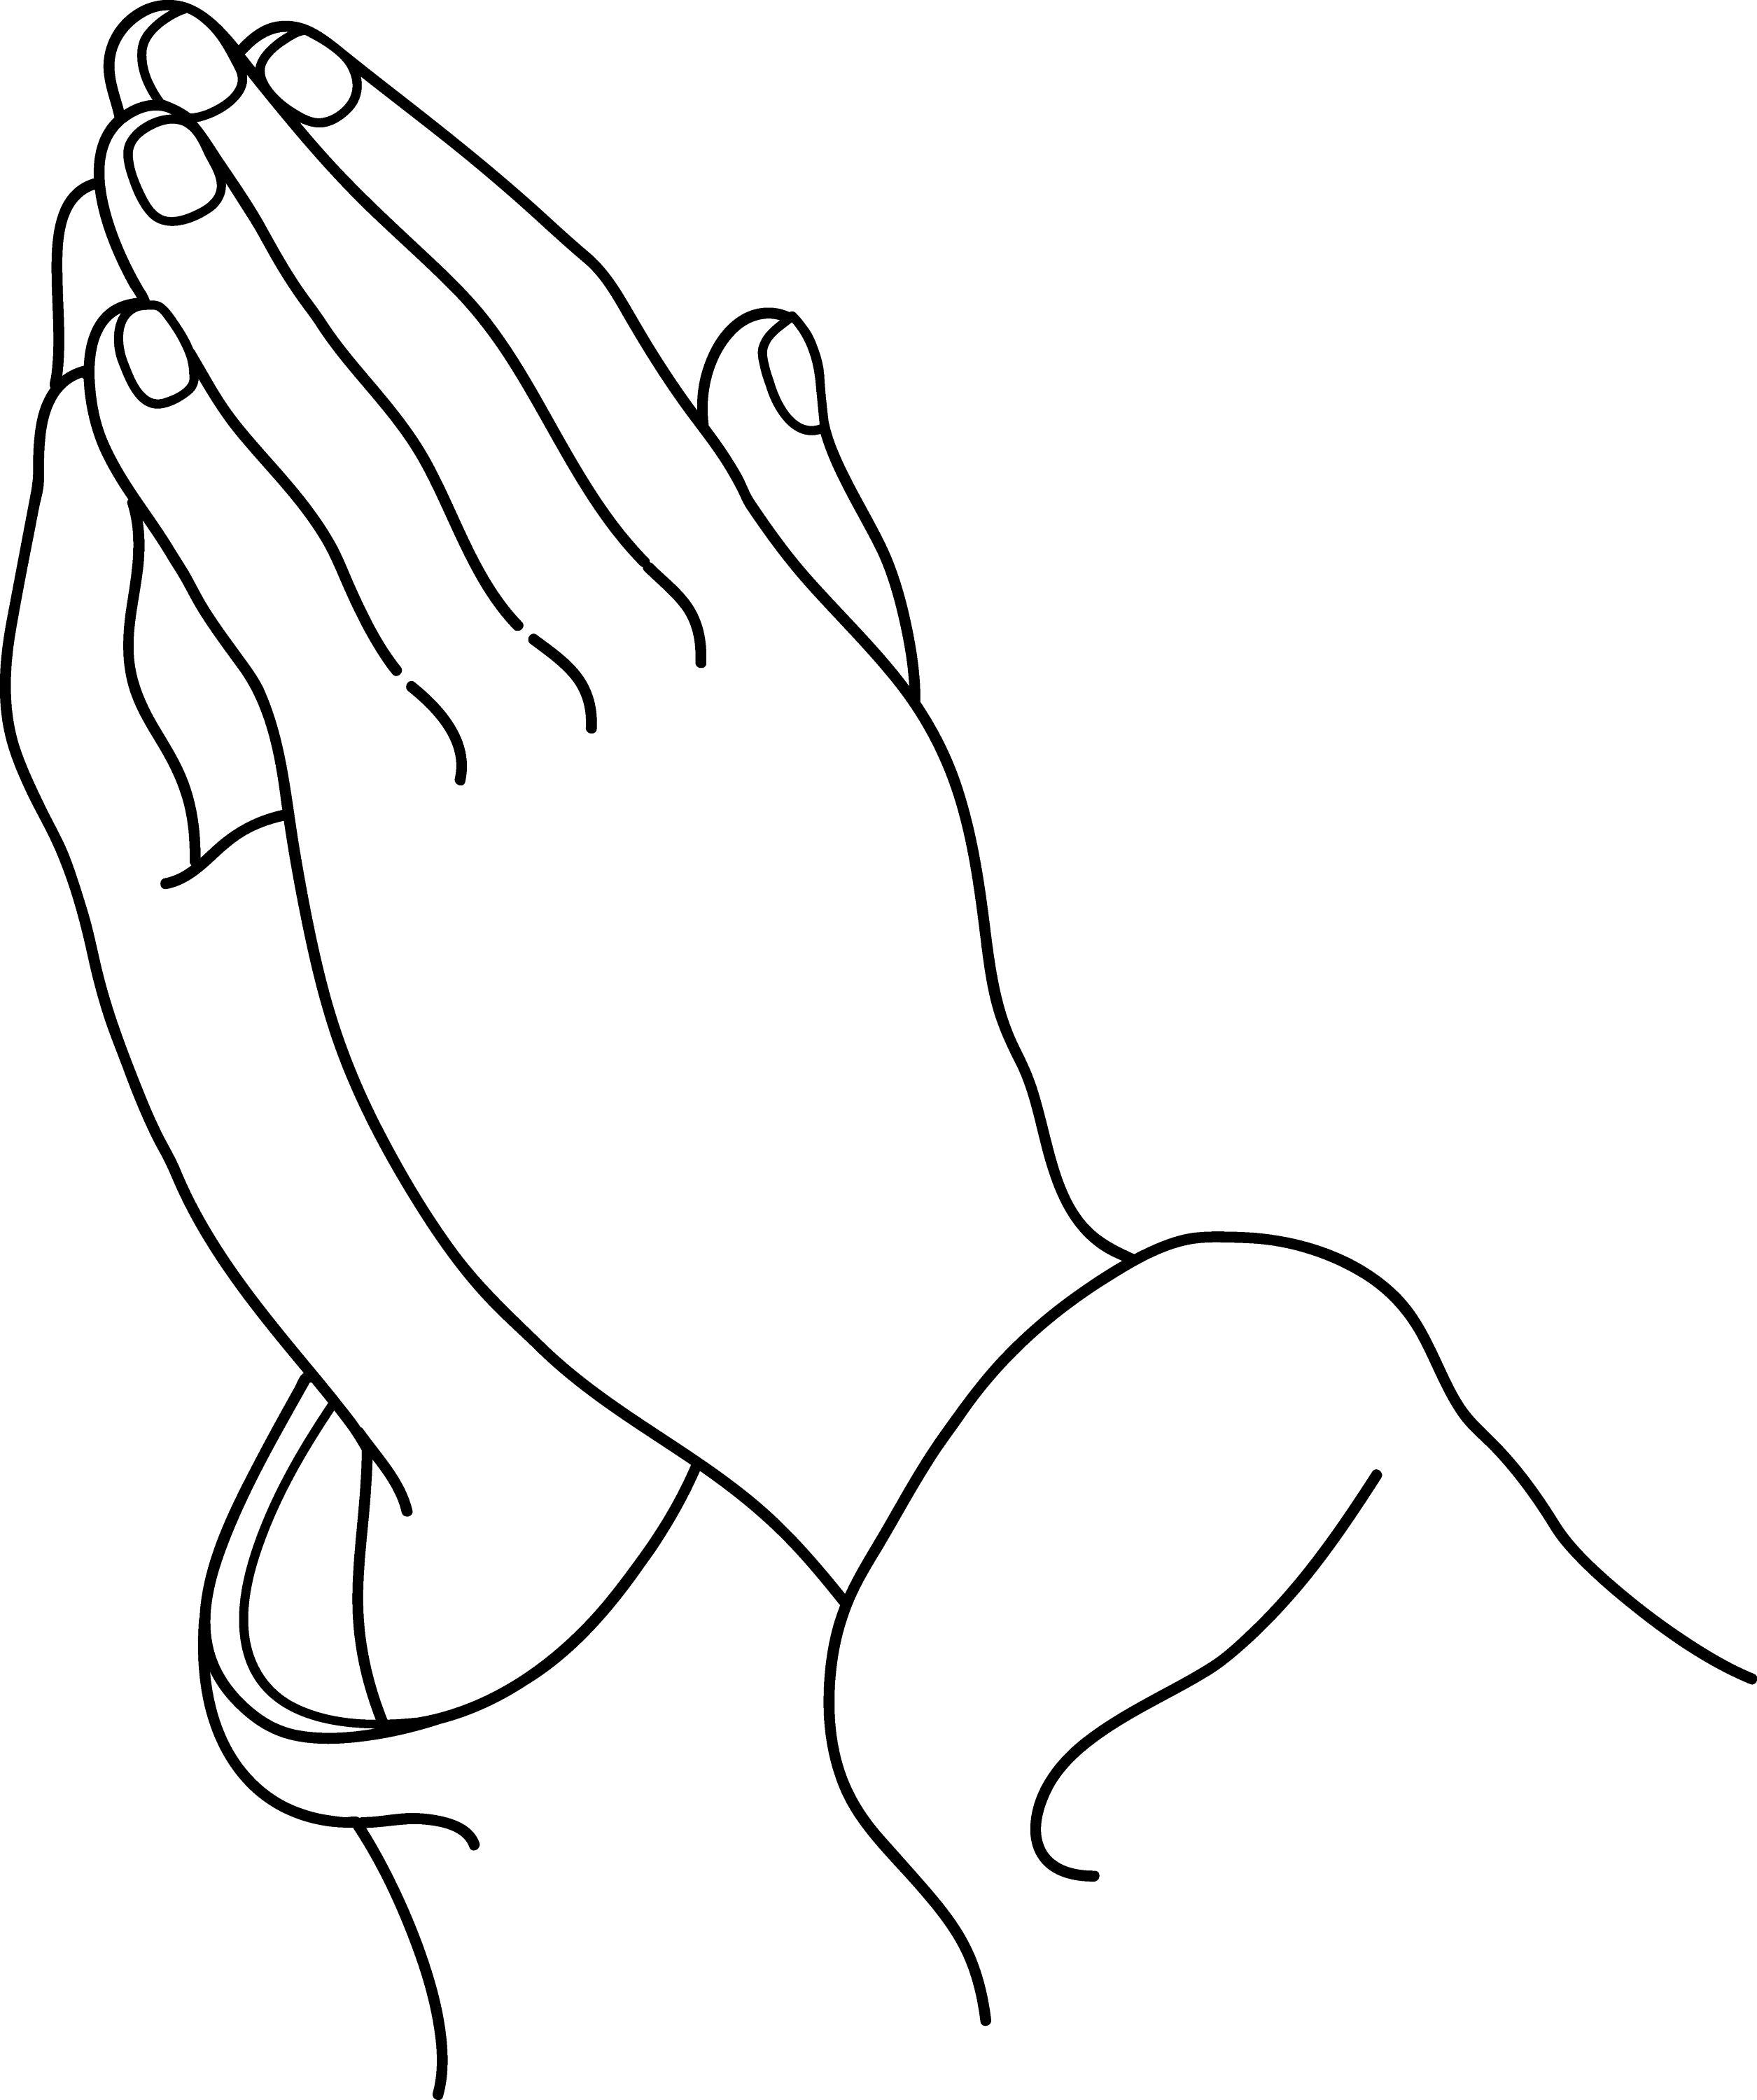 Line Art Hands : Praying hands line art free clip